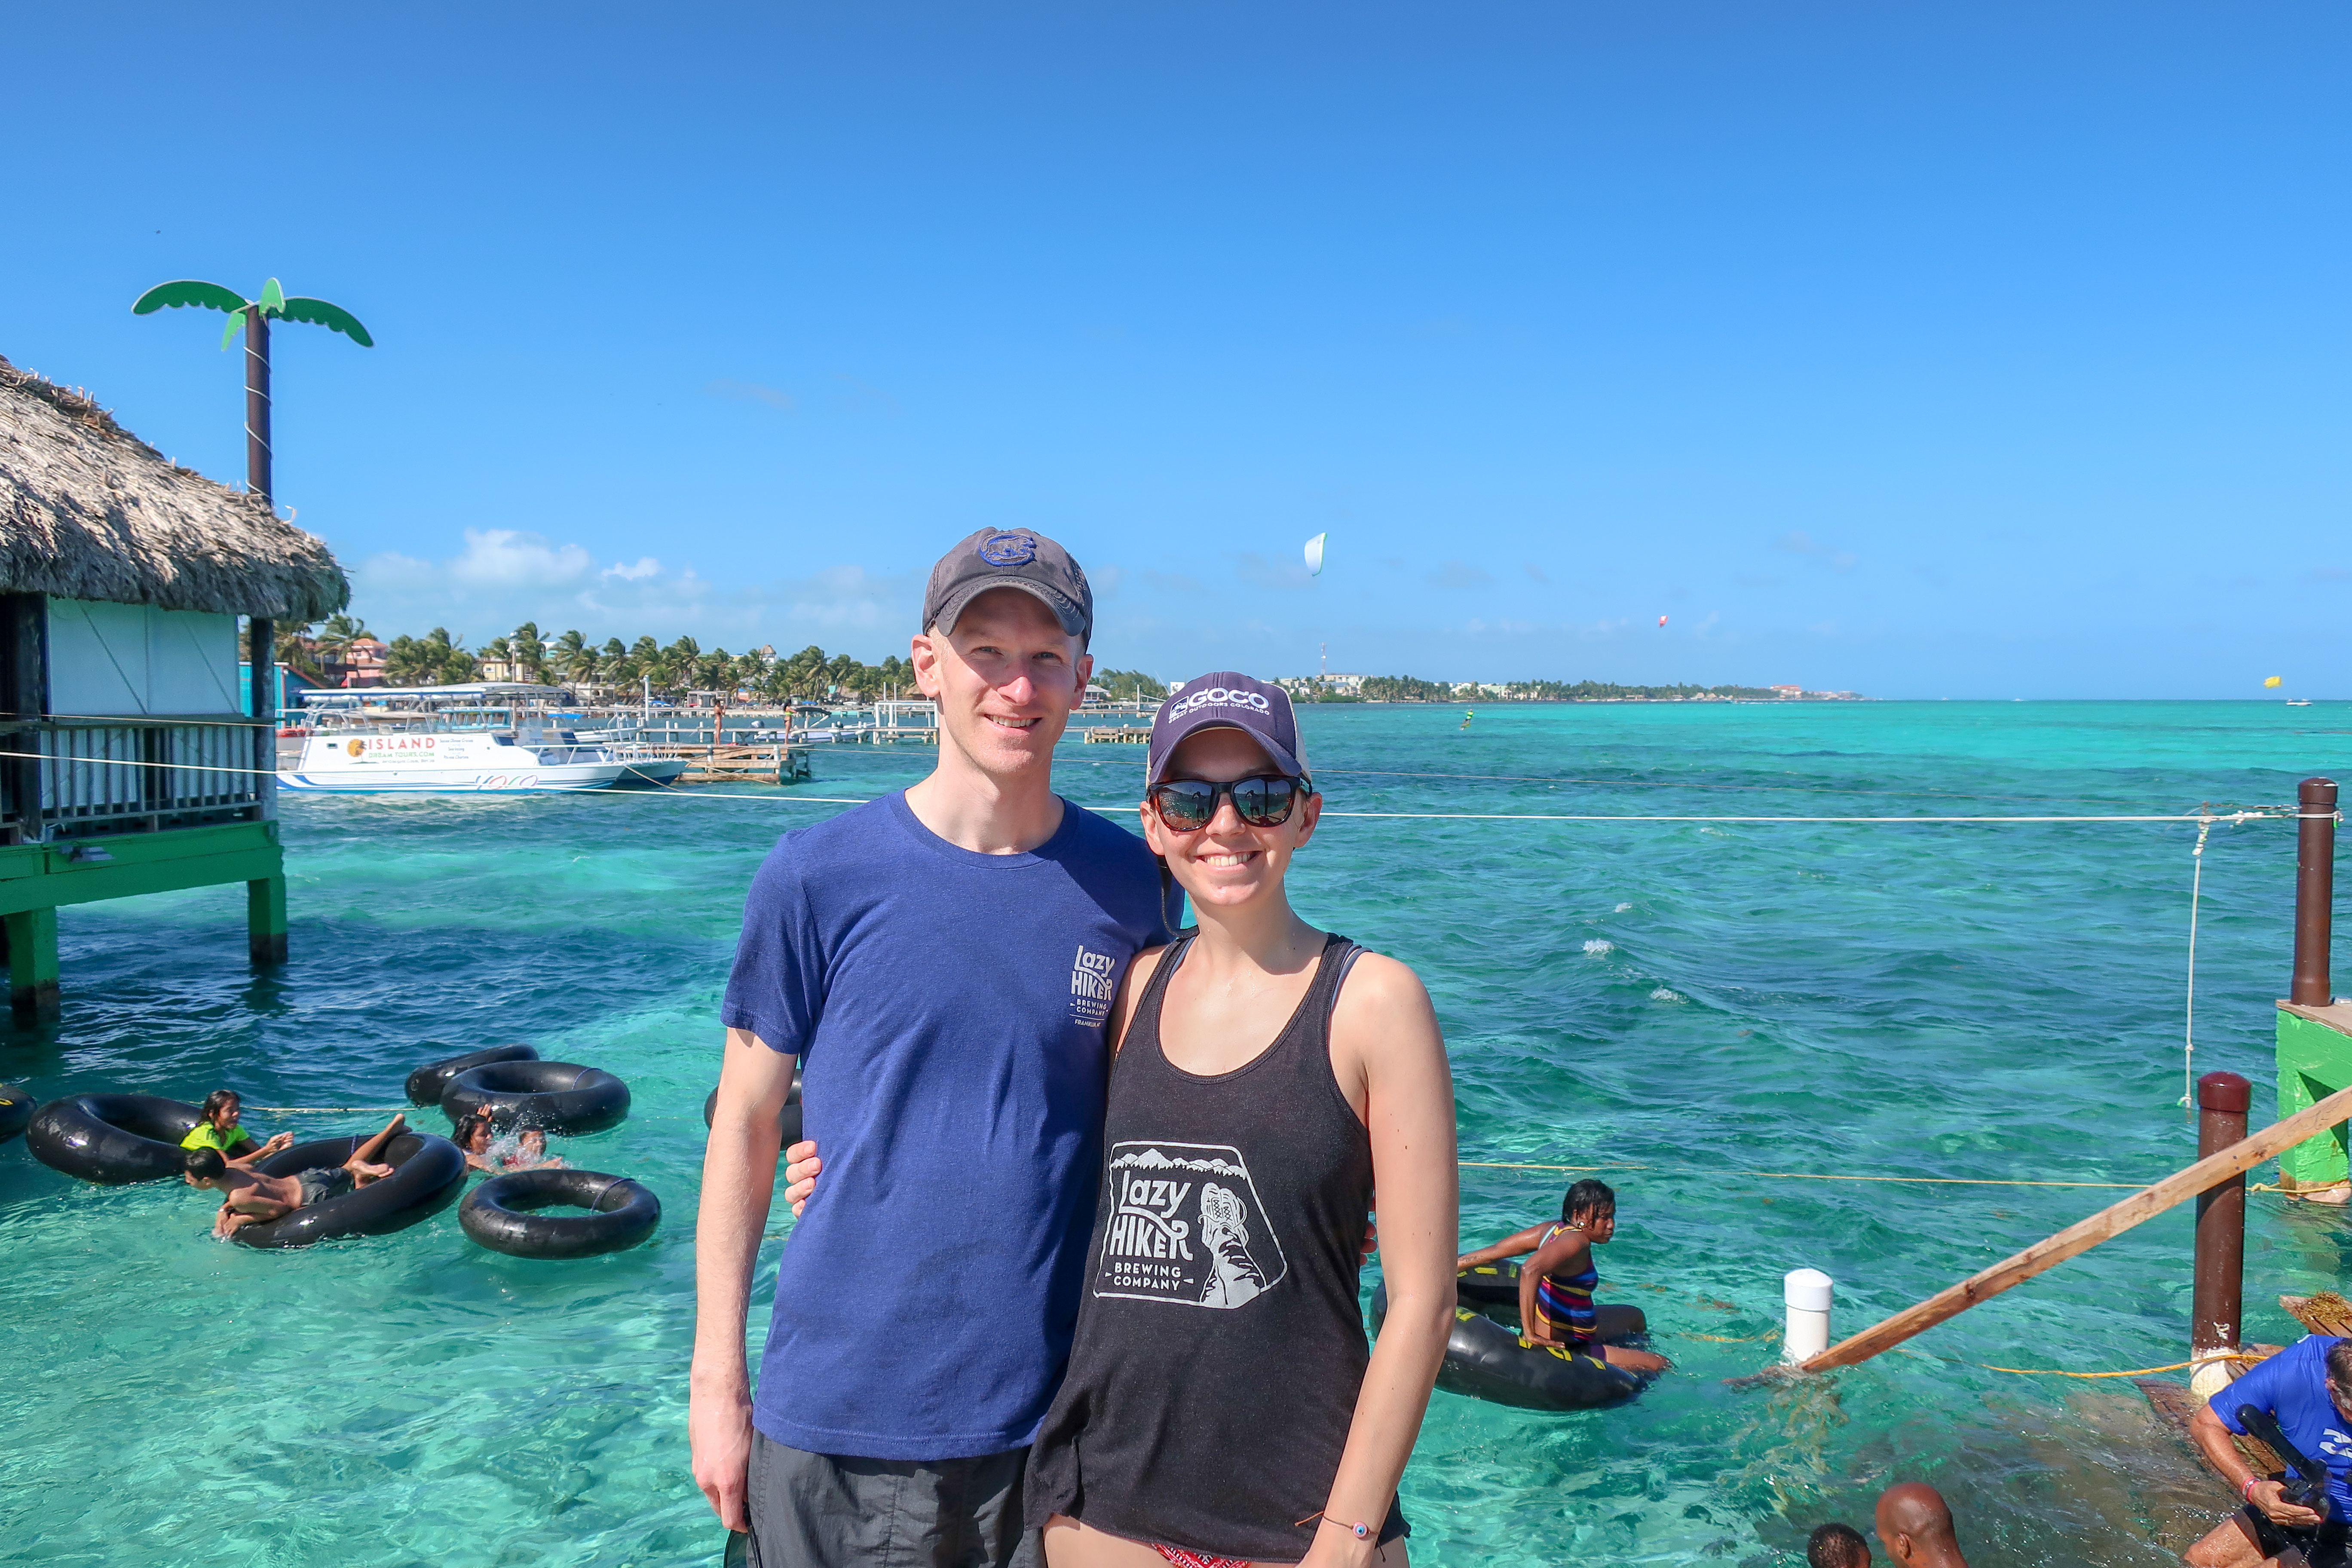 a couple stand in front of the turquoise water at the palapa bar in san pedro belize. Children on inner tubes float in the water behind them.